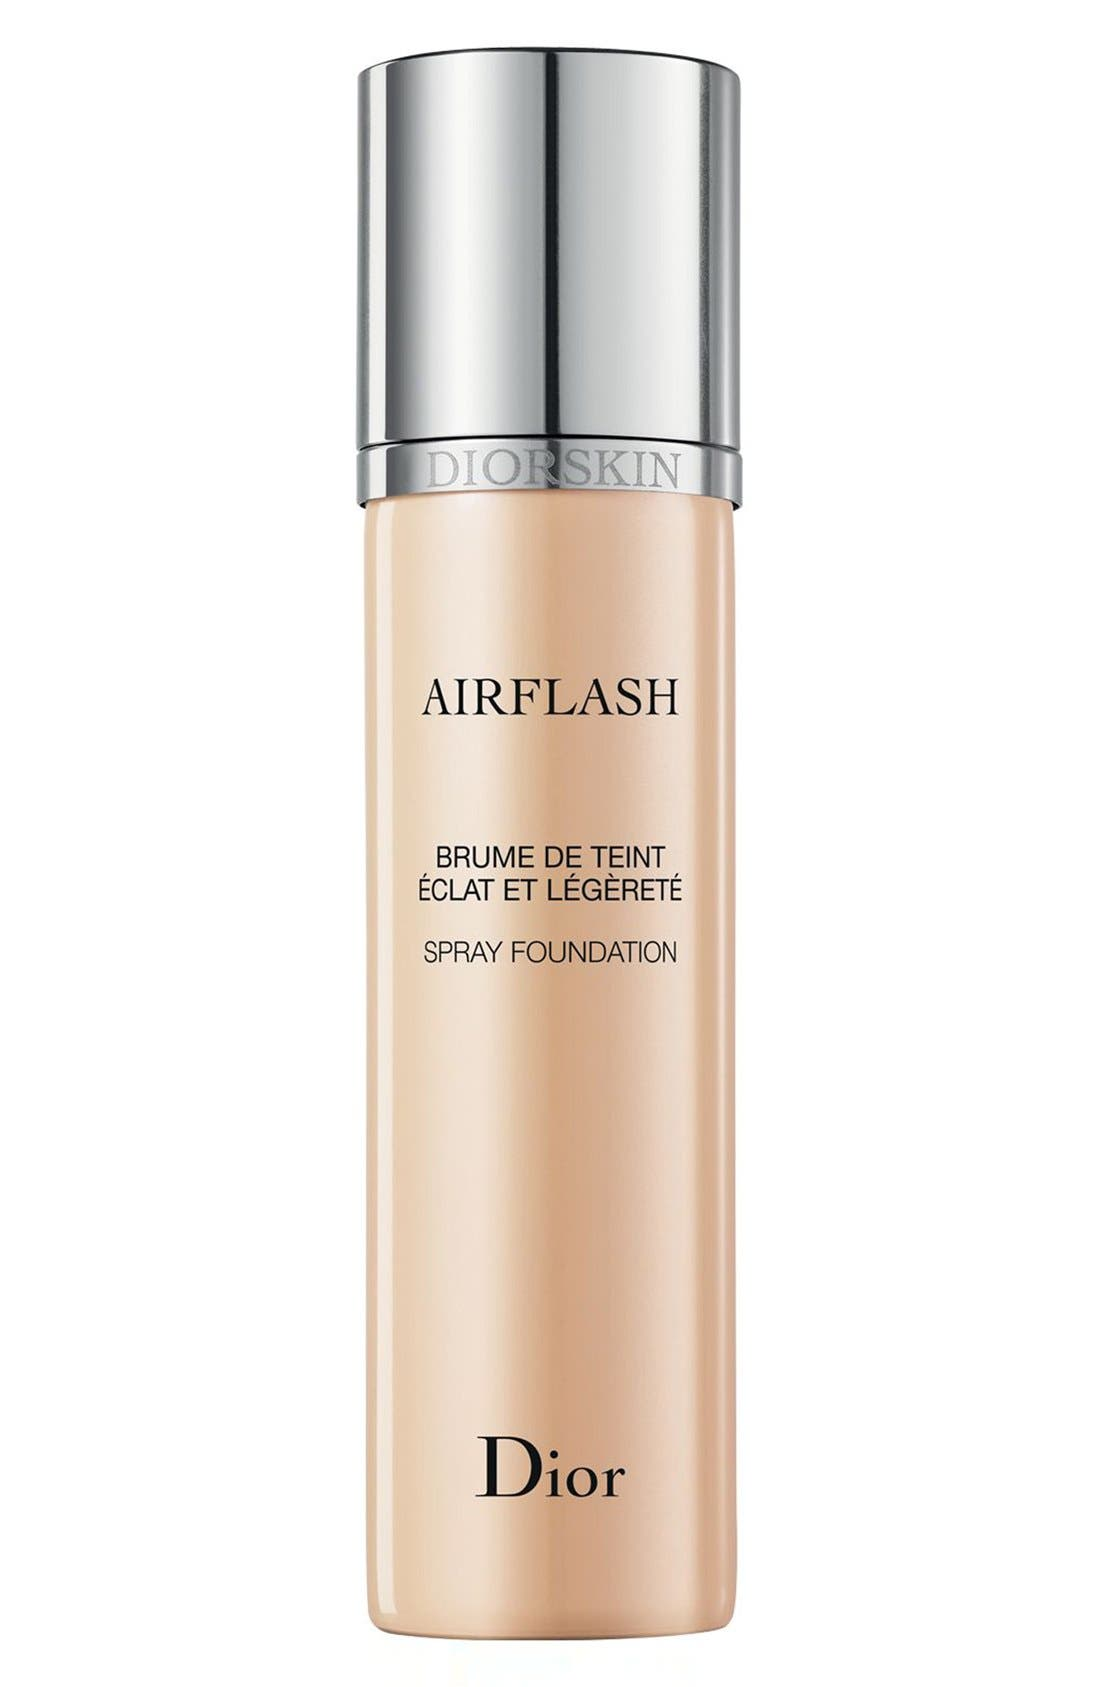 Dior 'Diorskin Airflash' Spray Foundation